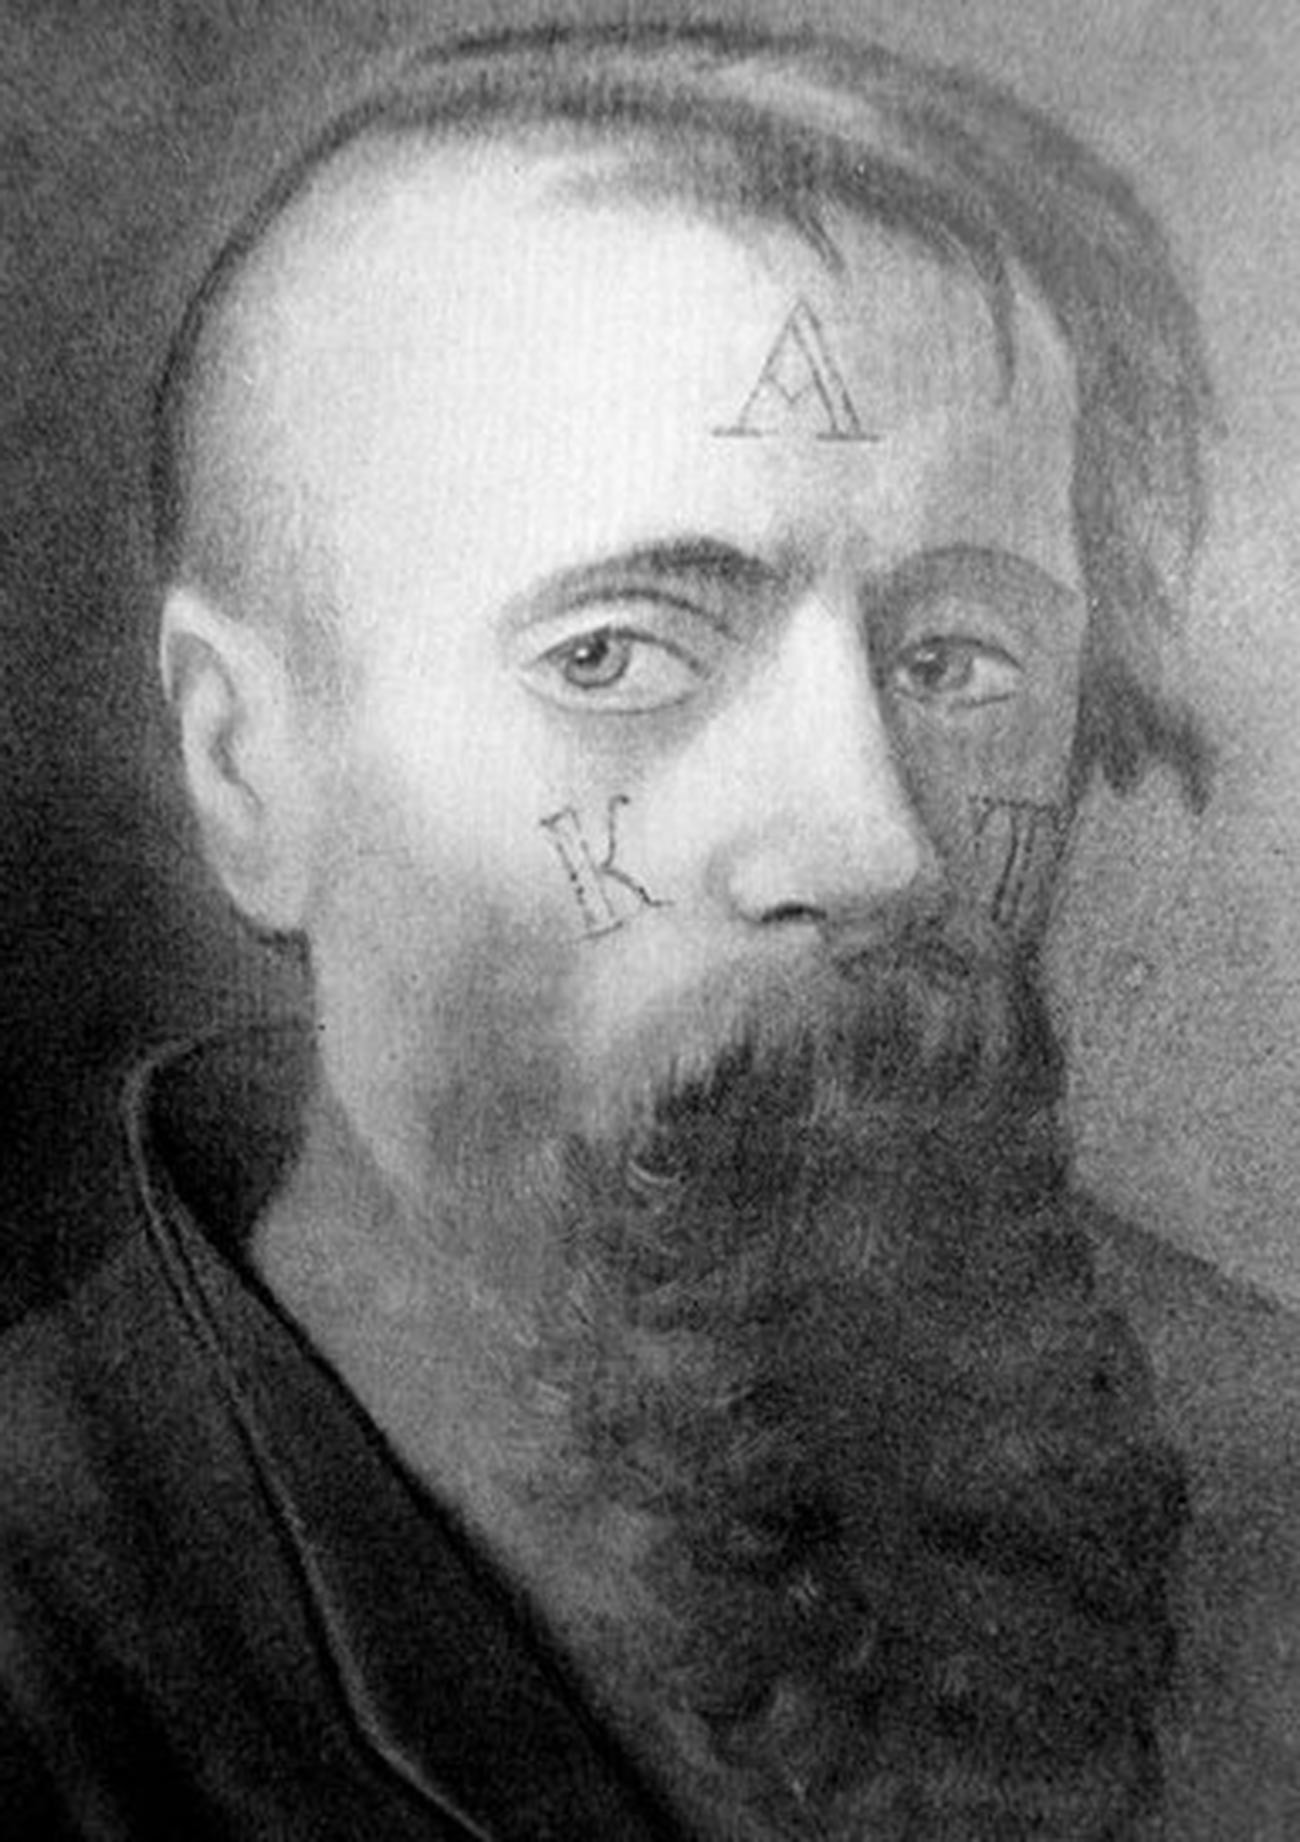 The way branding was performed on a convict's face